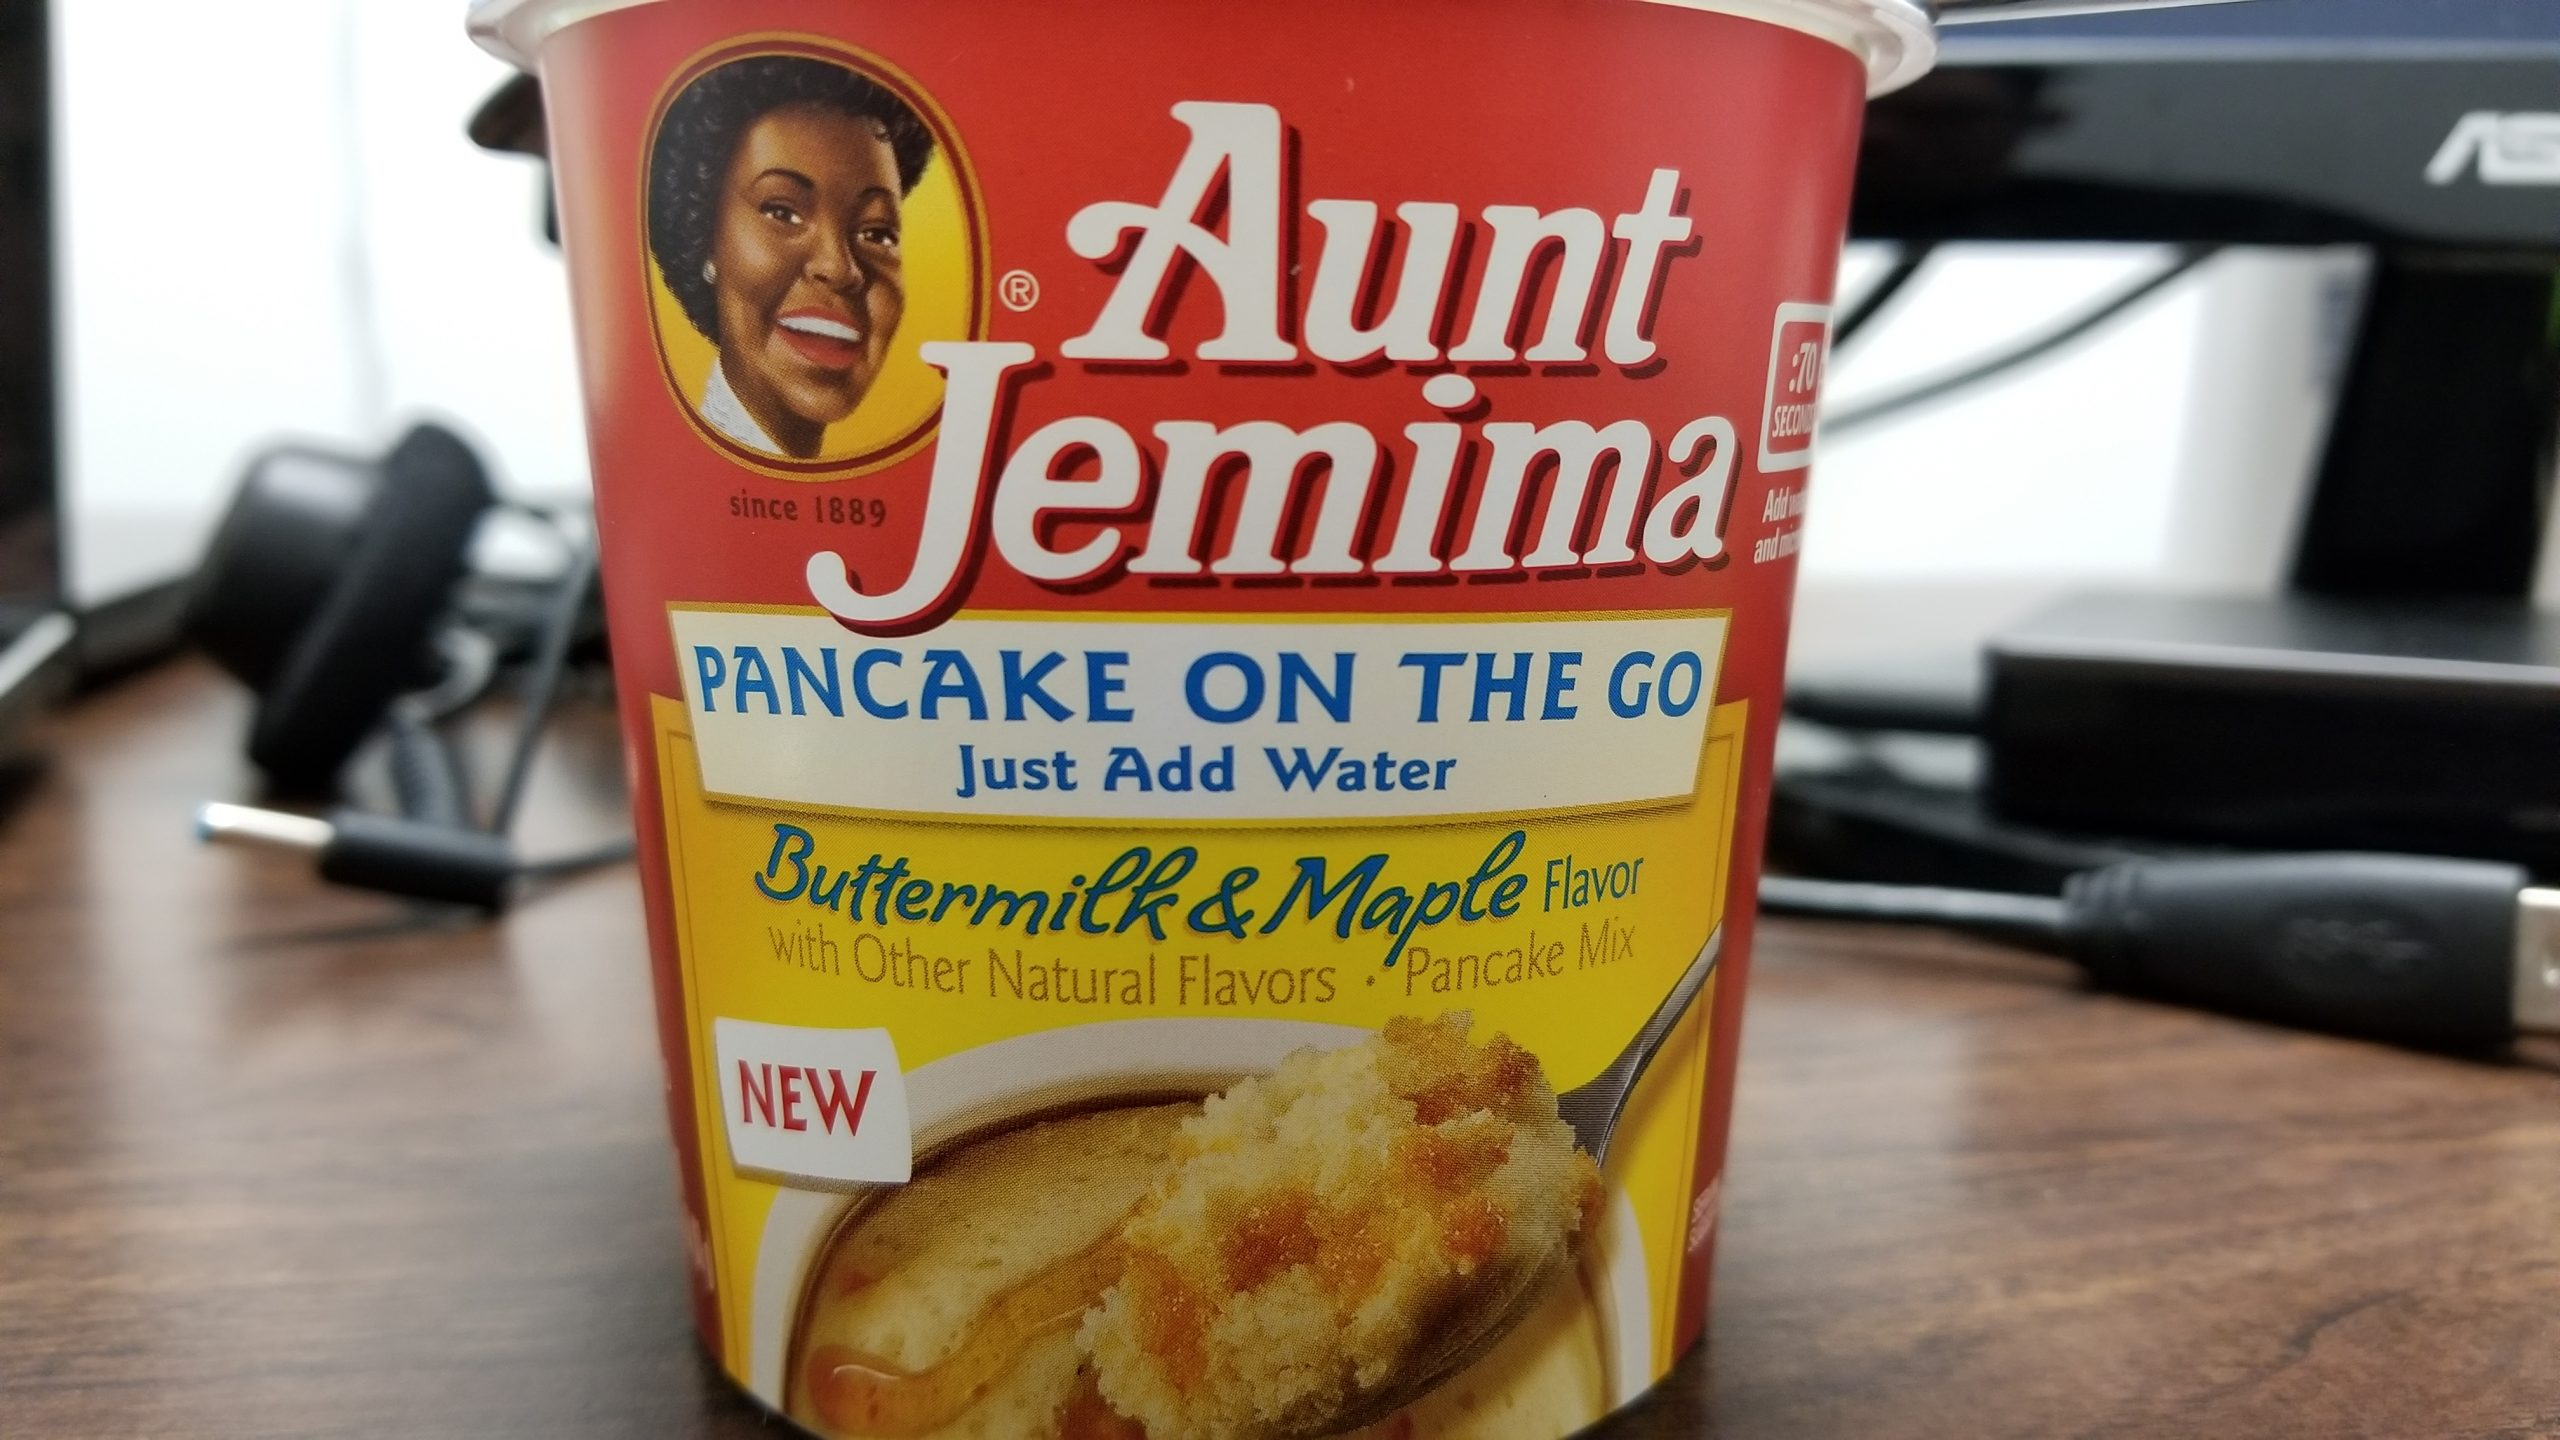 aunt jemima buttermilk and maple pancake cup